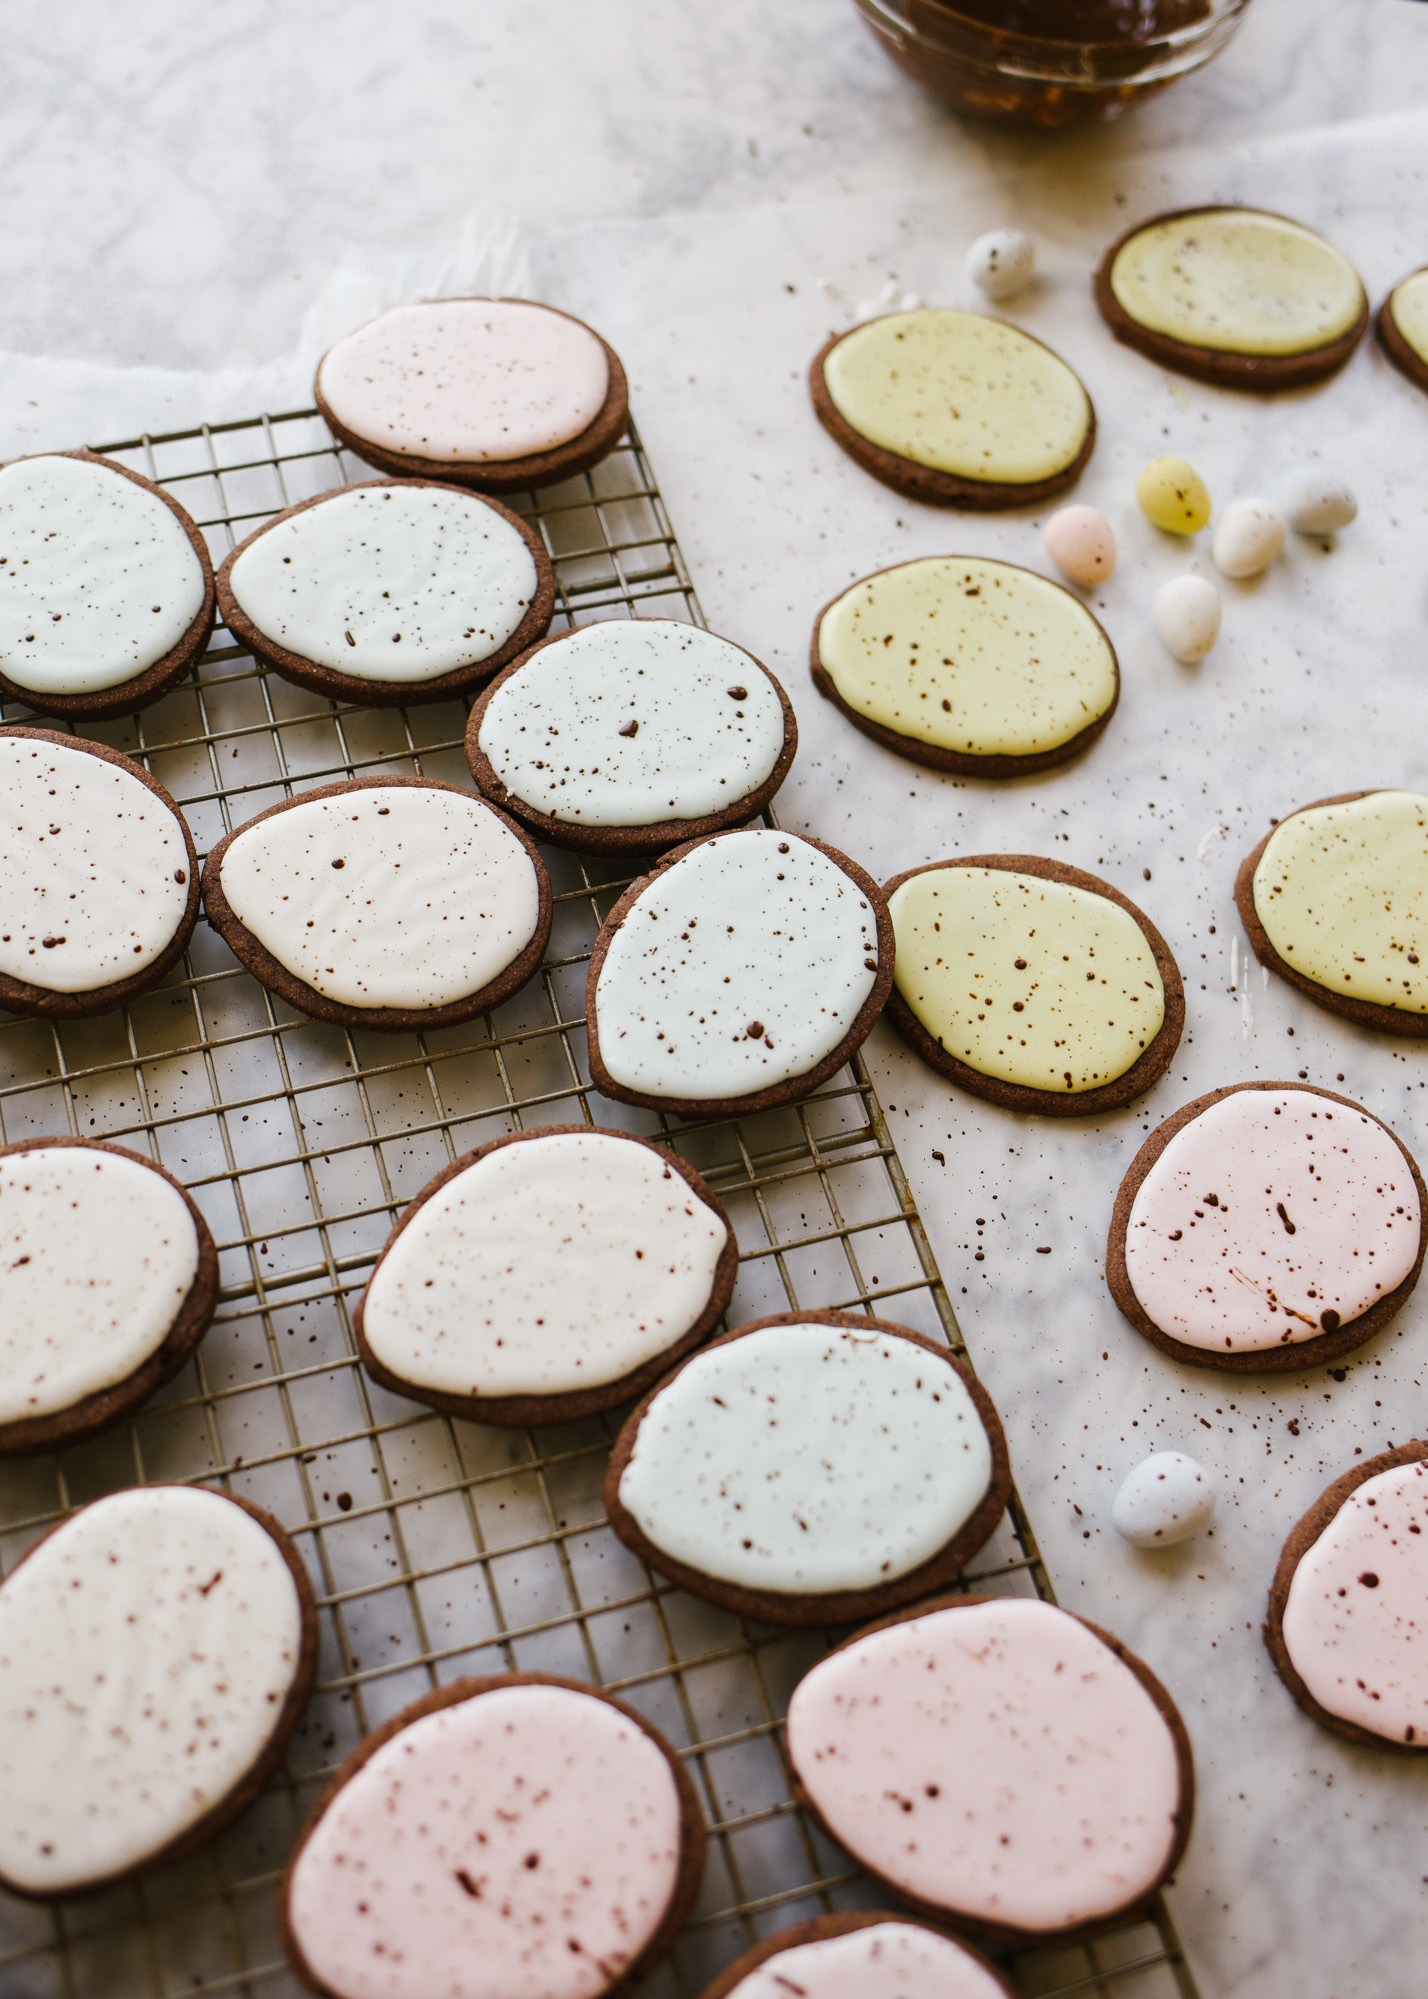 Chocolate Cutout Cookies (with Speckled Easter Egg Decorating Tutorial!) by Wood and spoon. These are cocoa powder and butter cutout cookies that are simple and don't require softened butter. You can make and freeze these in advance and the icing is simple. No royal icing- just a yummy one bowl glaze. This splattered robin egg decorating technique is a great edible easter craft for kids. Learn how to make these at home on thewoodandspoon.com